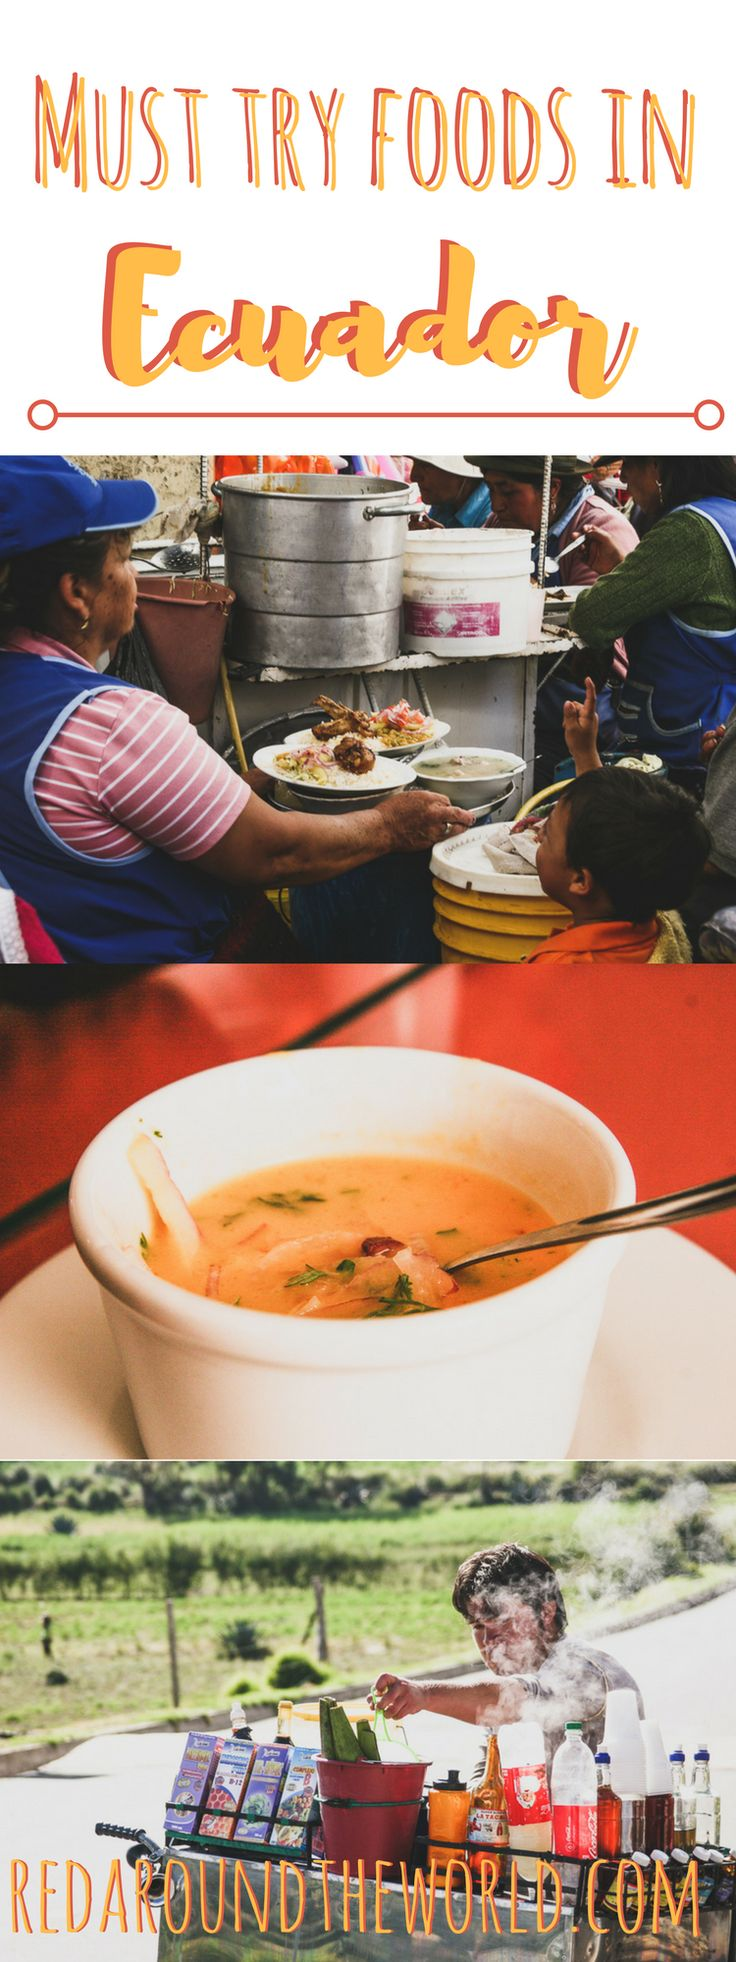 What to eat in Ecuador   Must Try food in Ecuador   Trying new food is one of the best parts of traveling.  This will help you decide what to try in Ecuador